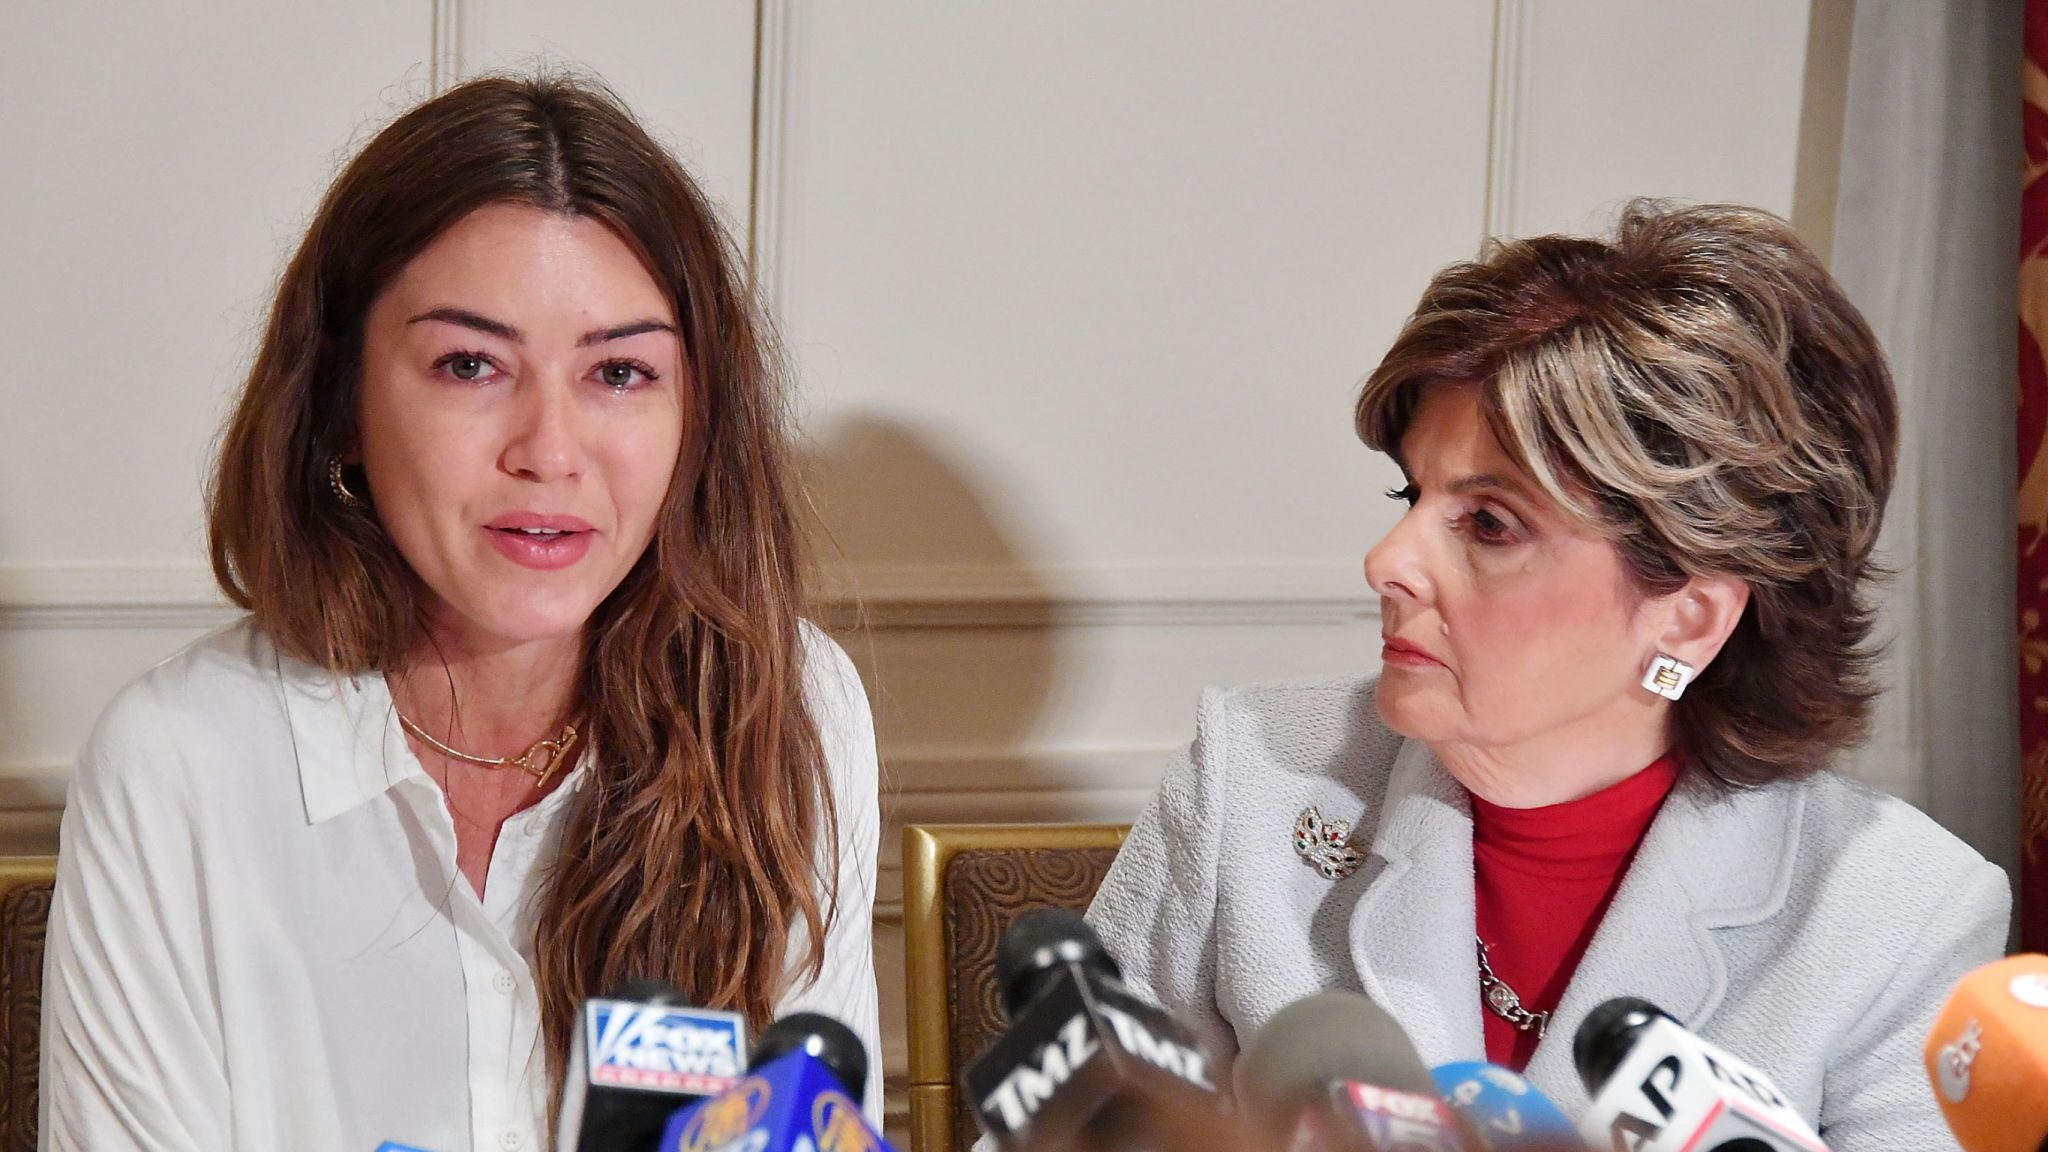 Mimi Haleyi (left) spoke at a news conference with lawyer Gloria Allred